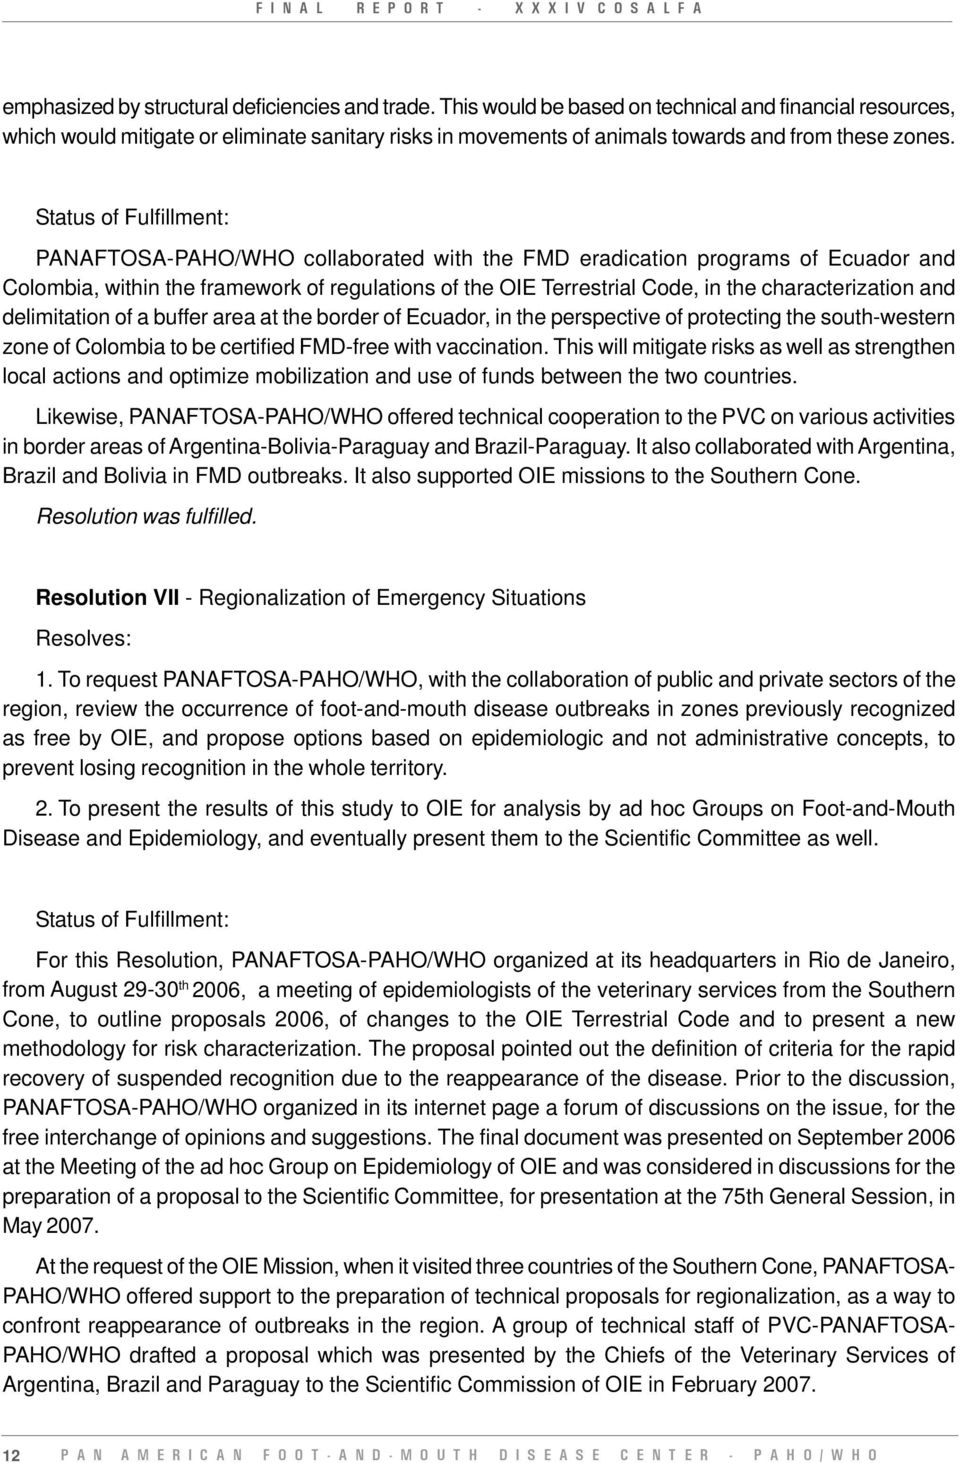 Status of Fulfillment: PANAFTOSA-PAHO/WHO collaborated with the FMD eradication programs of Ecuador and Colombia, within the framework of regulations of the OIE Terrestrial Code, in the